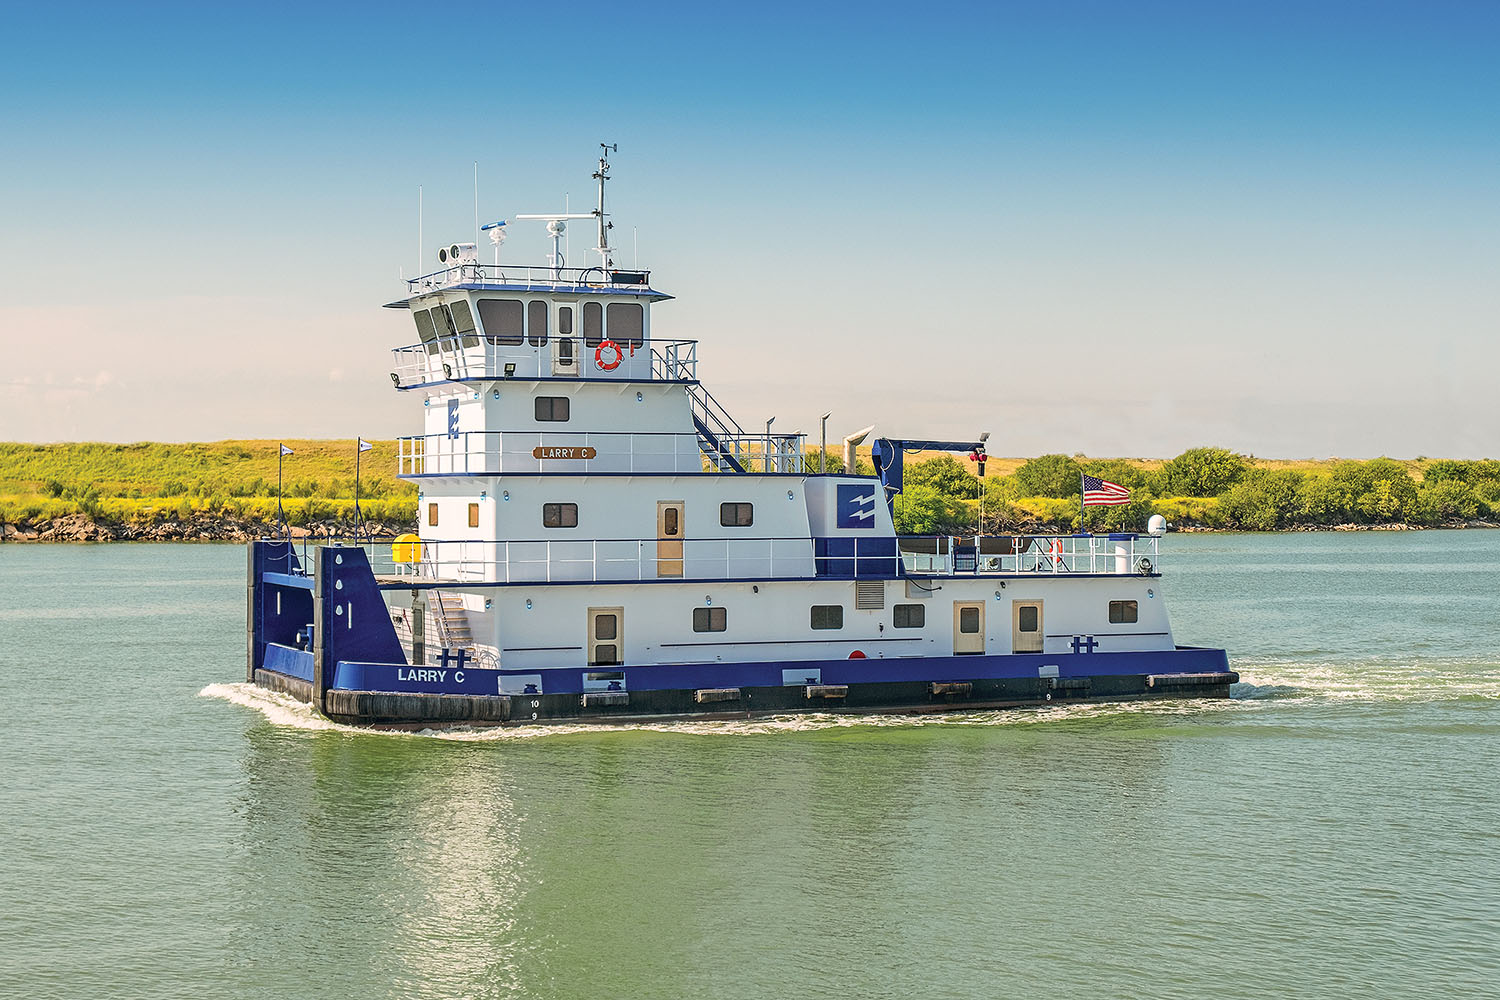 Towboat has 2,680 hp. from twin Caterpillar 3512C diesels.